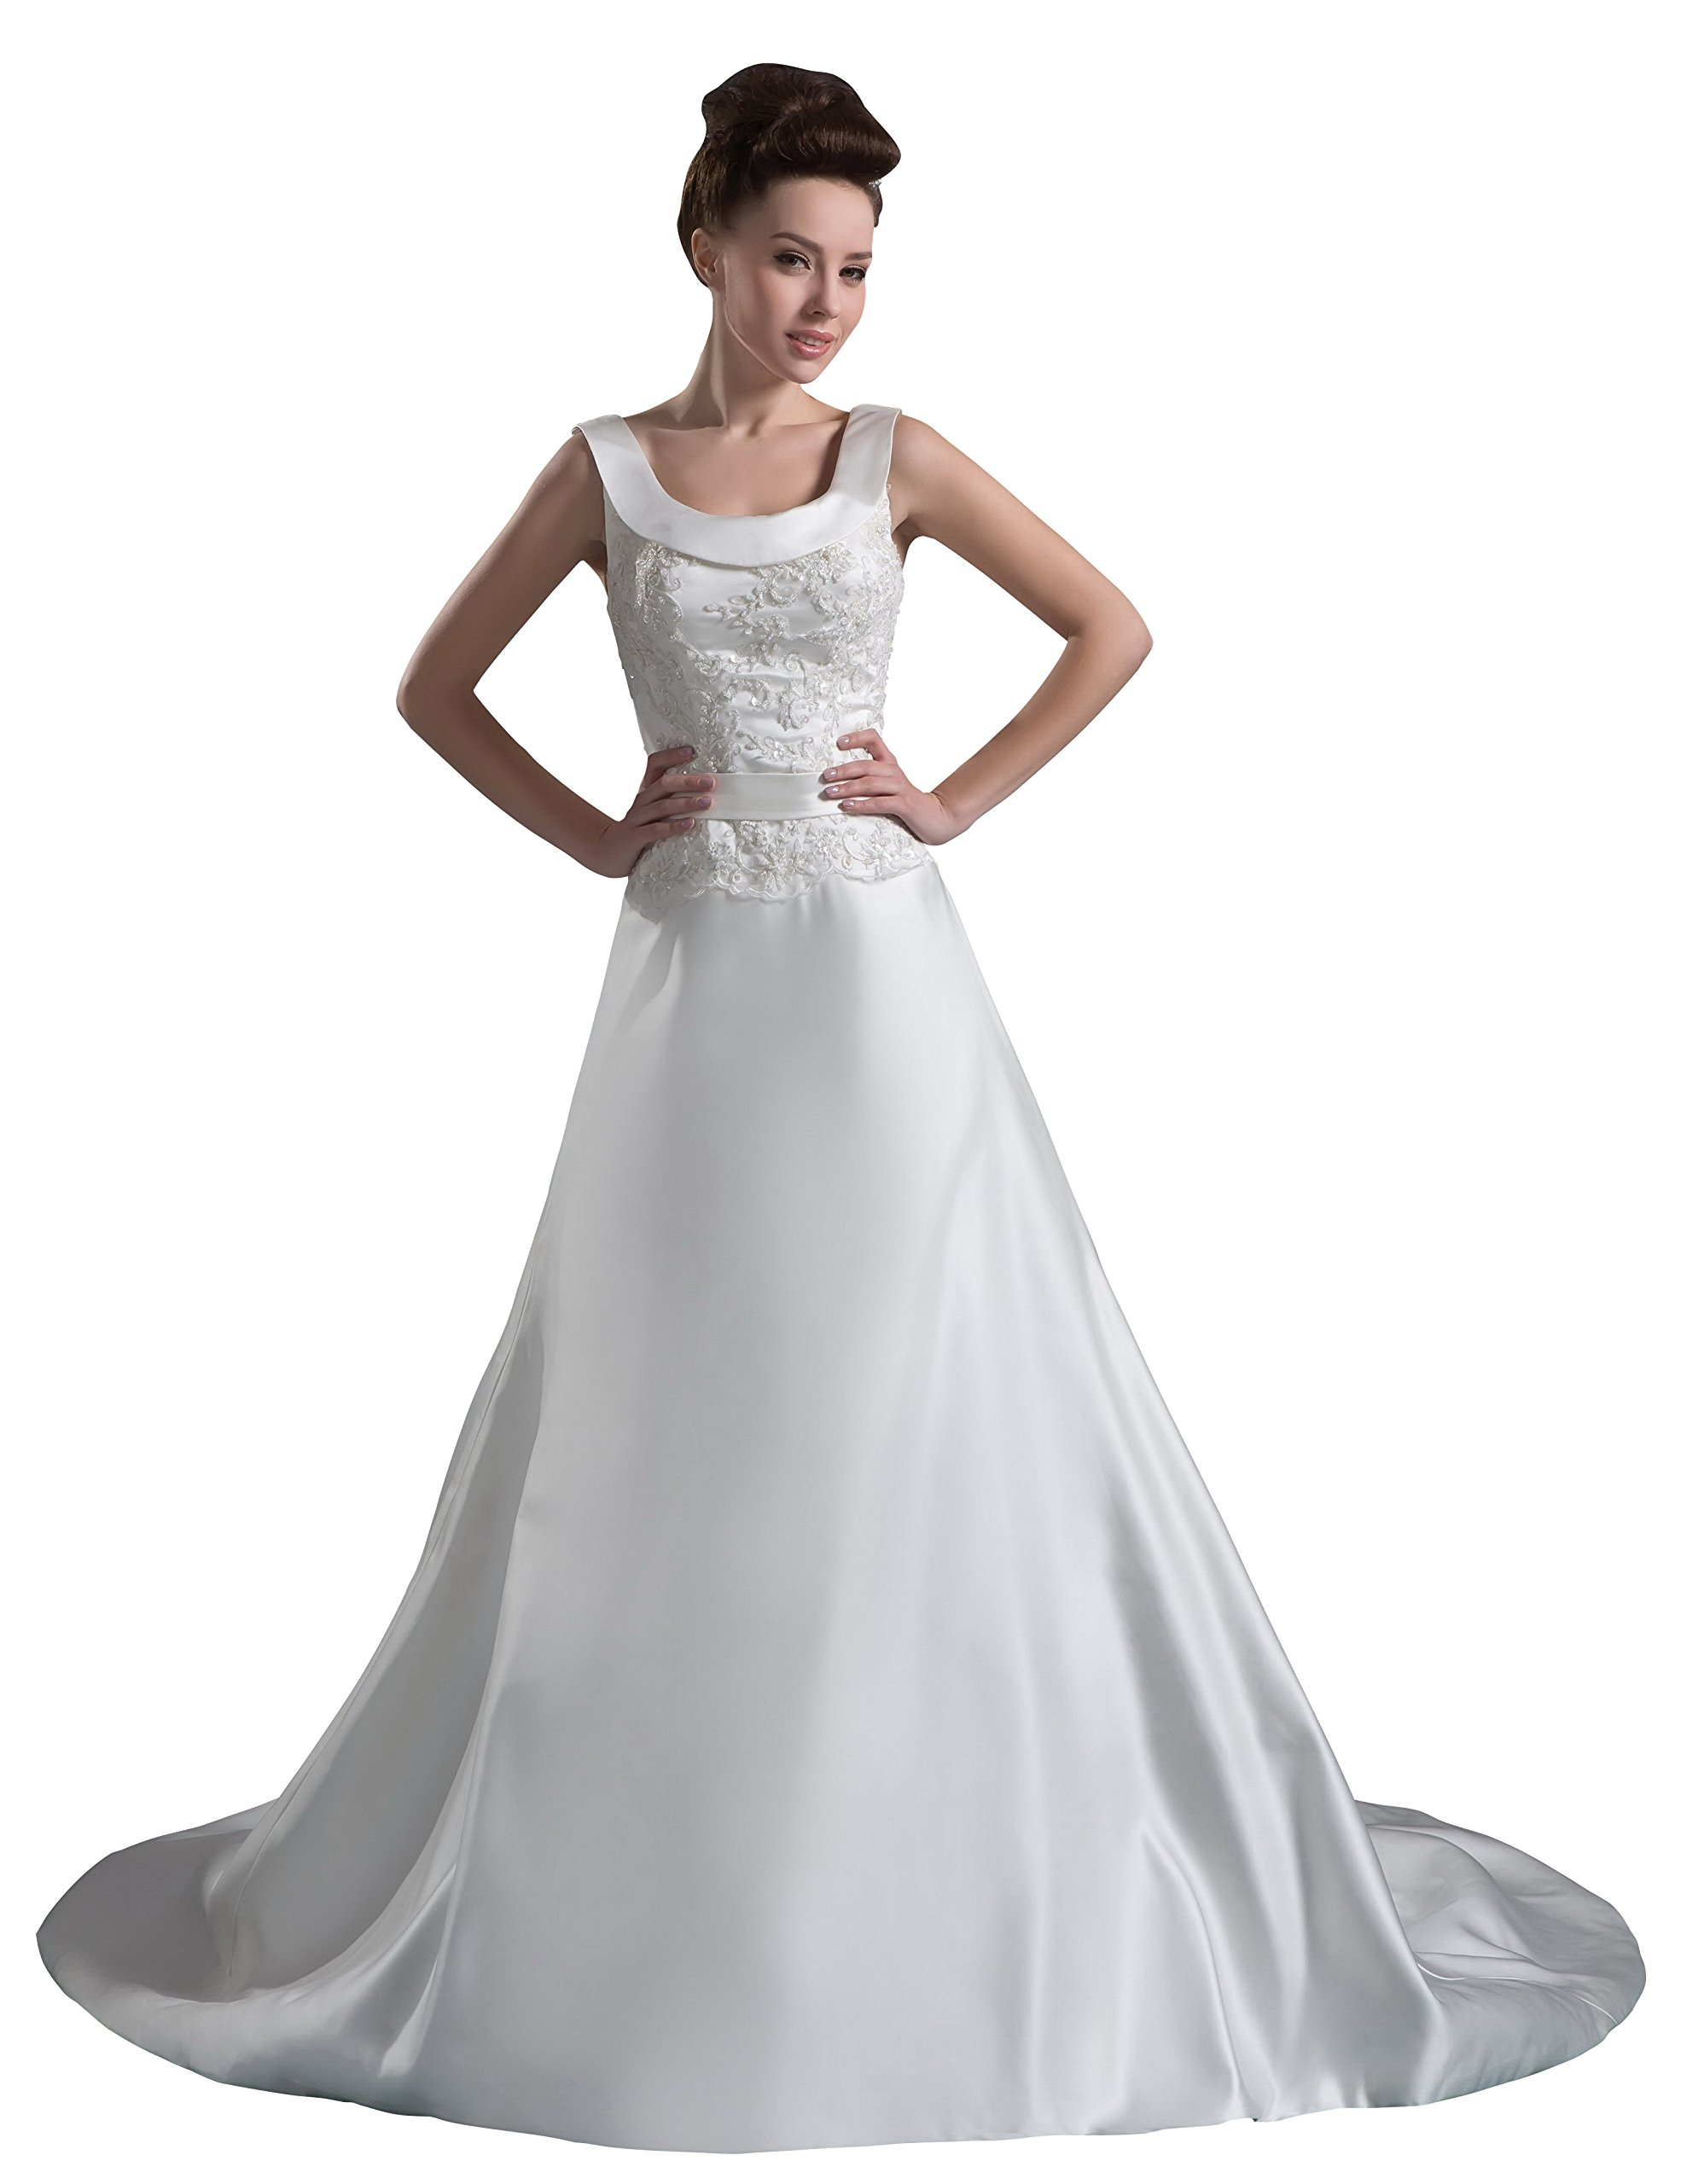 Vogue007 Womens Straps Silk Pongee Wedding Dress with Embroidery, White, Customized